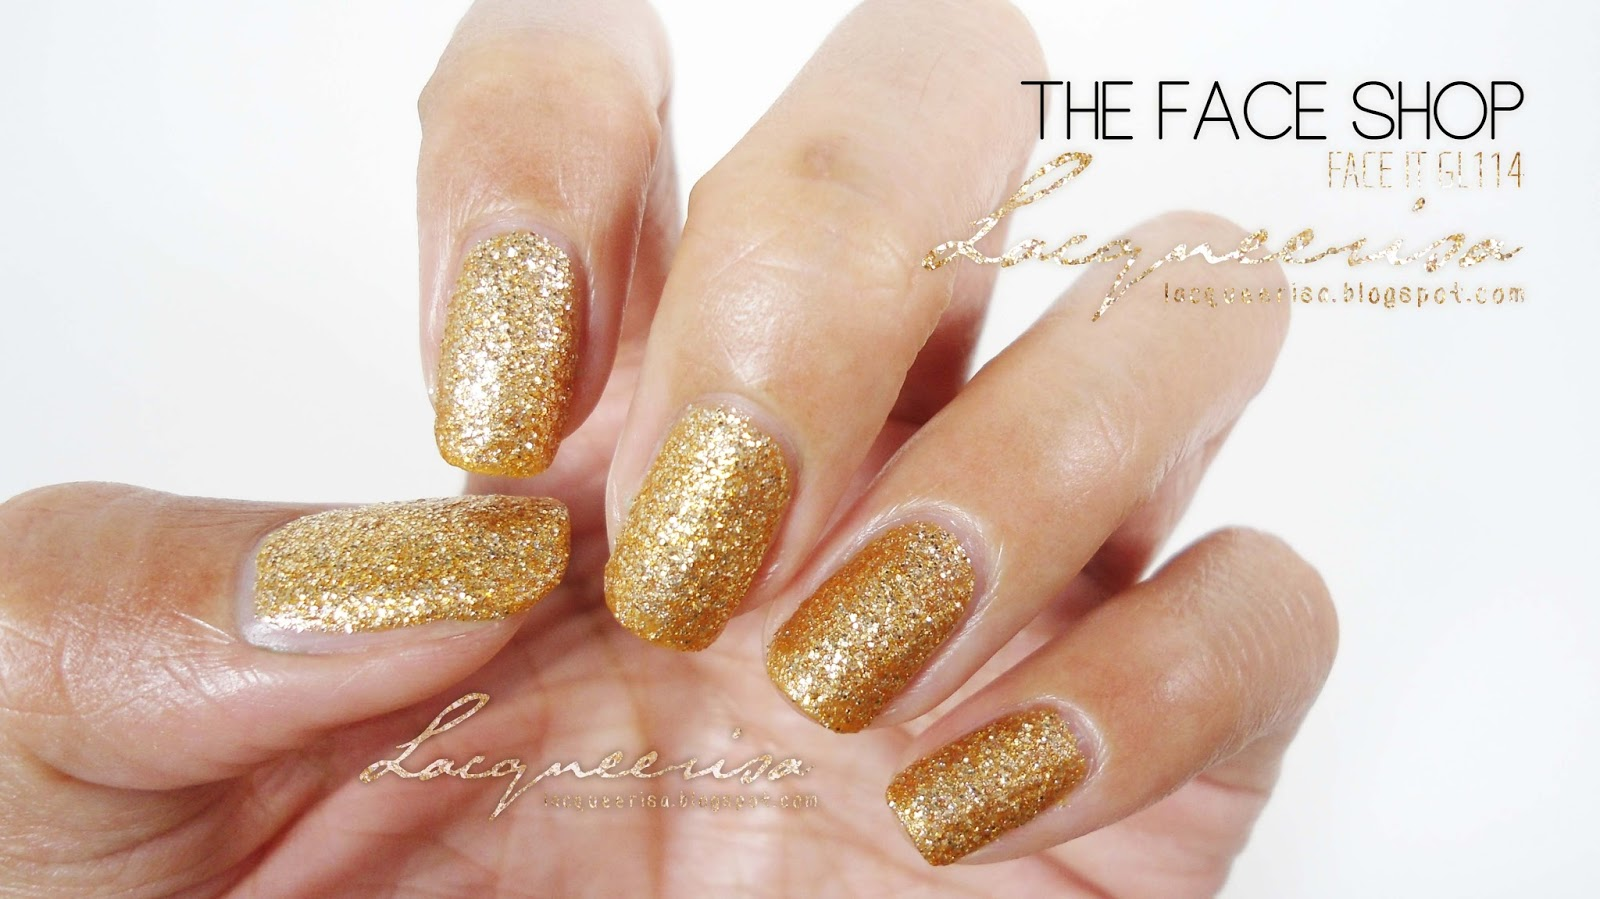 Lacqueerisa: The Face Shop GL114 (without topcoat)